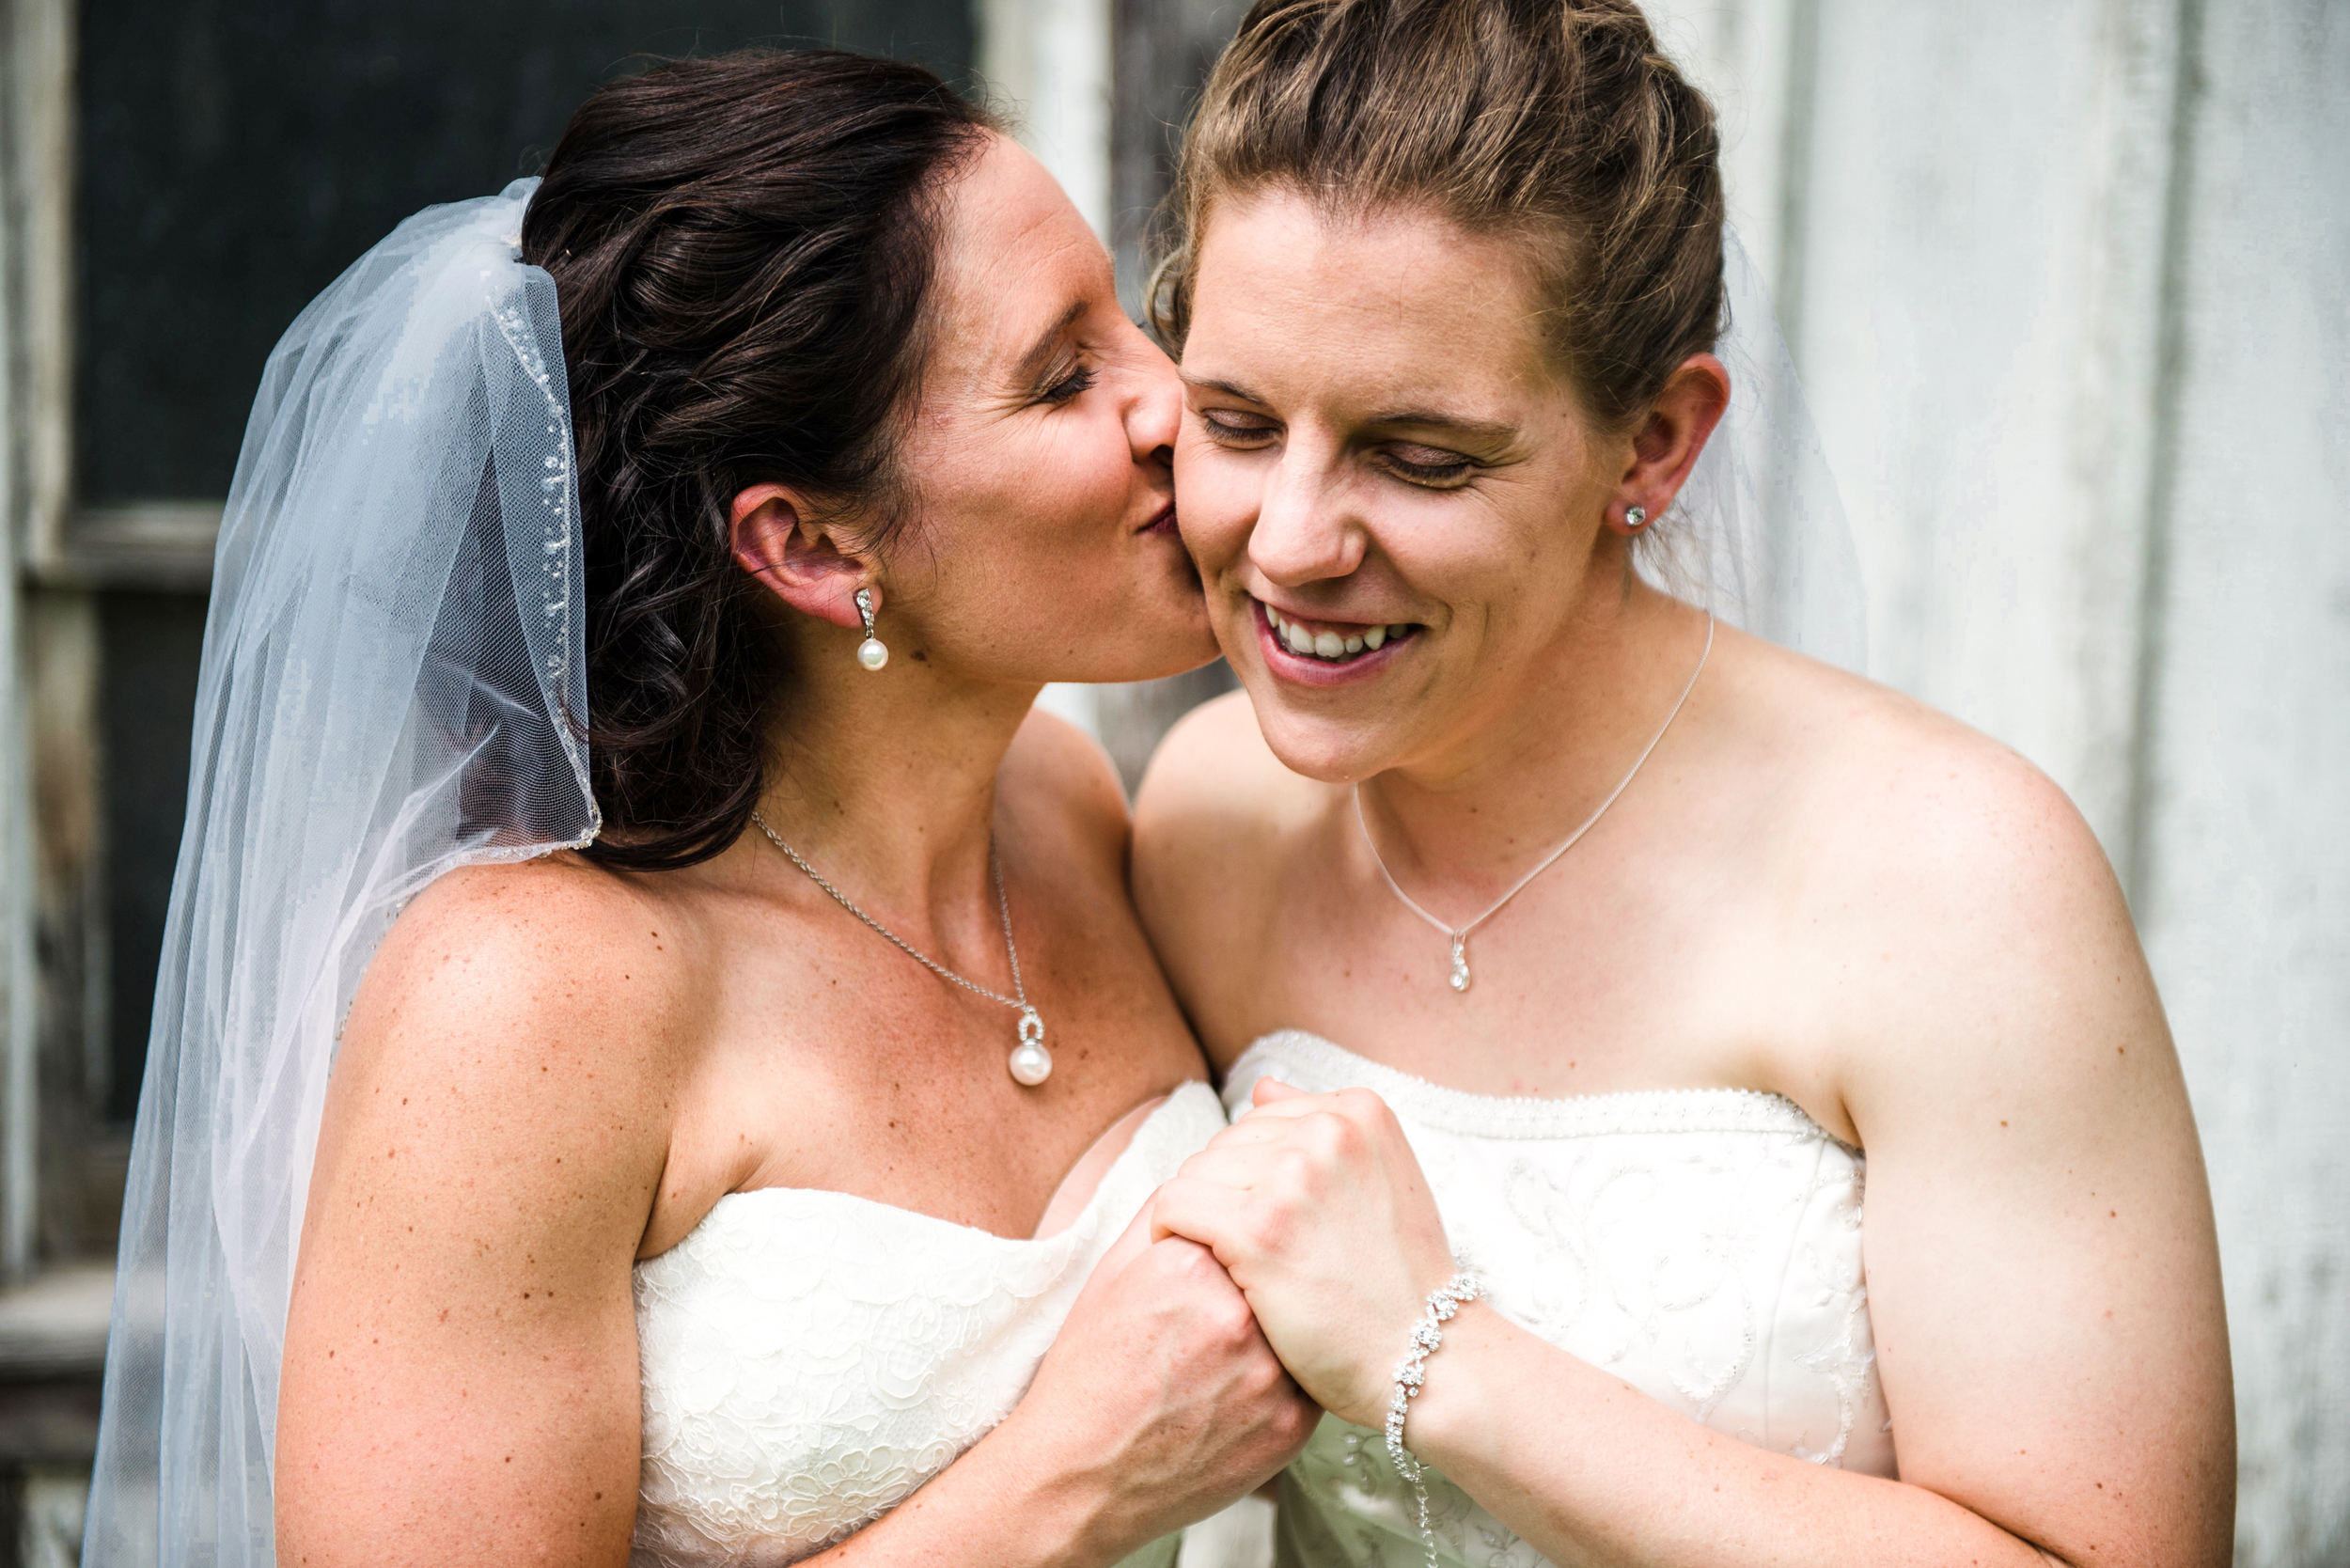 Minnesota LGBT Wedding Photography - Megan and Trista - RKH Images - Portraits (27 of 490).jpg